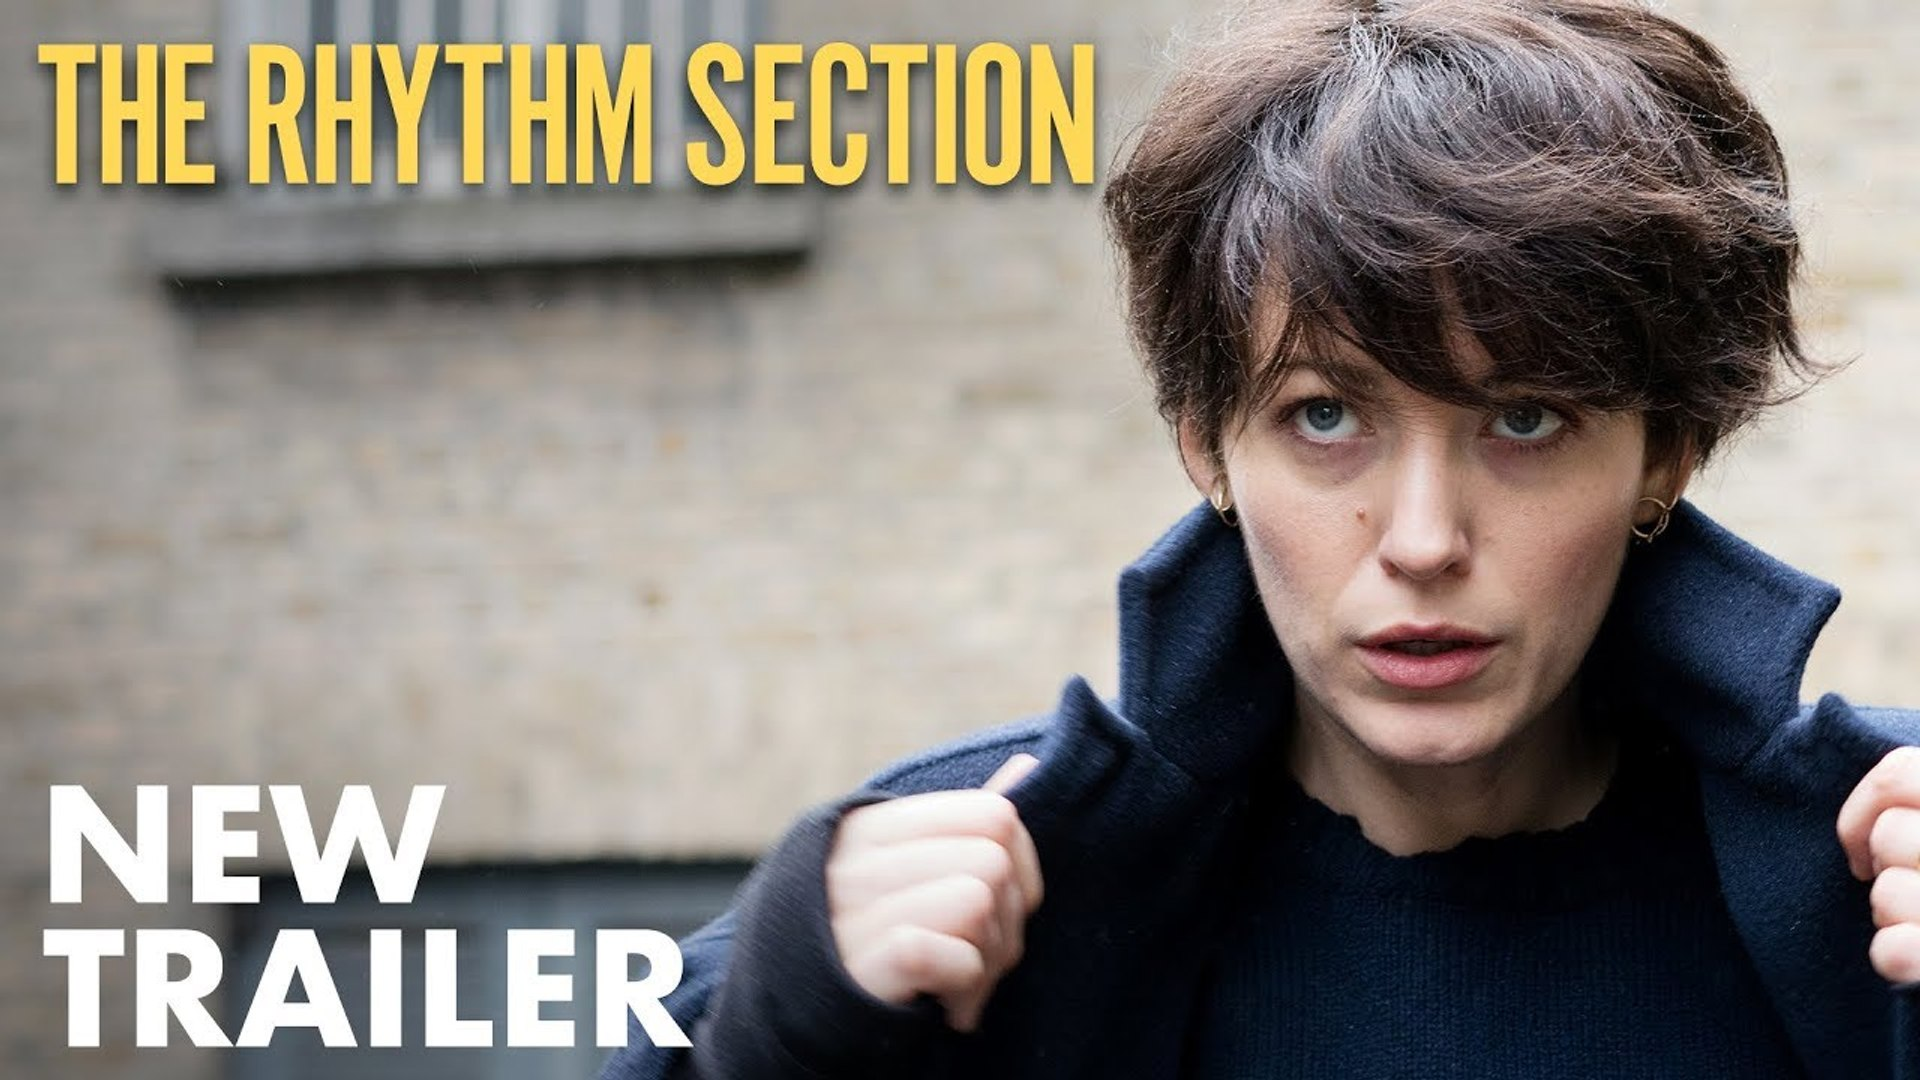 The Rhythm Section Official Trailer 2 (2020) Blake Lively, Jude Law Drama Movie